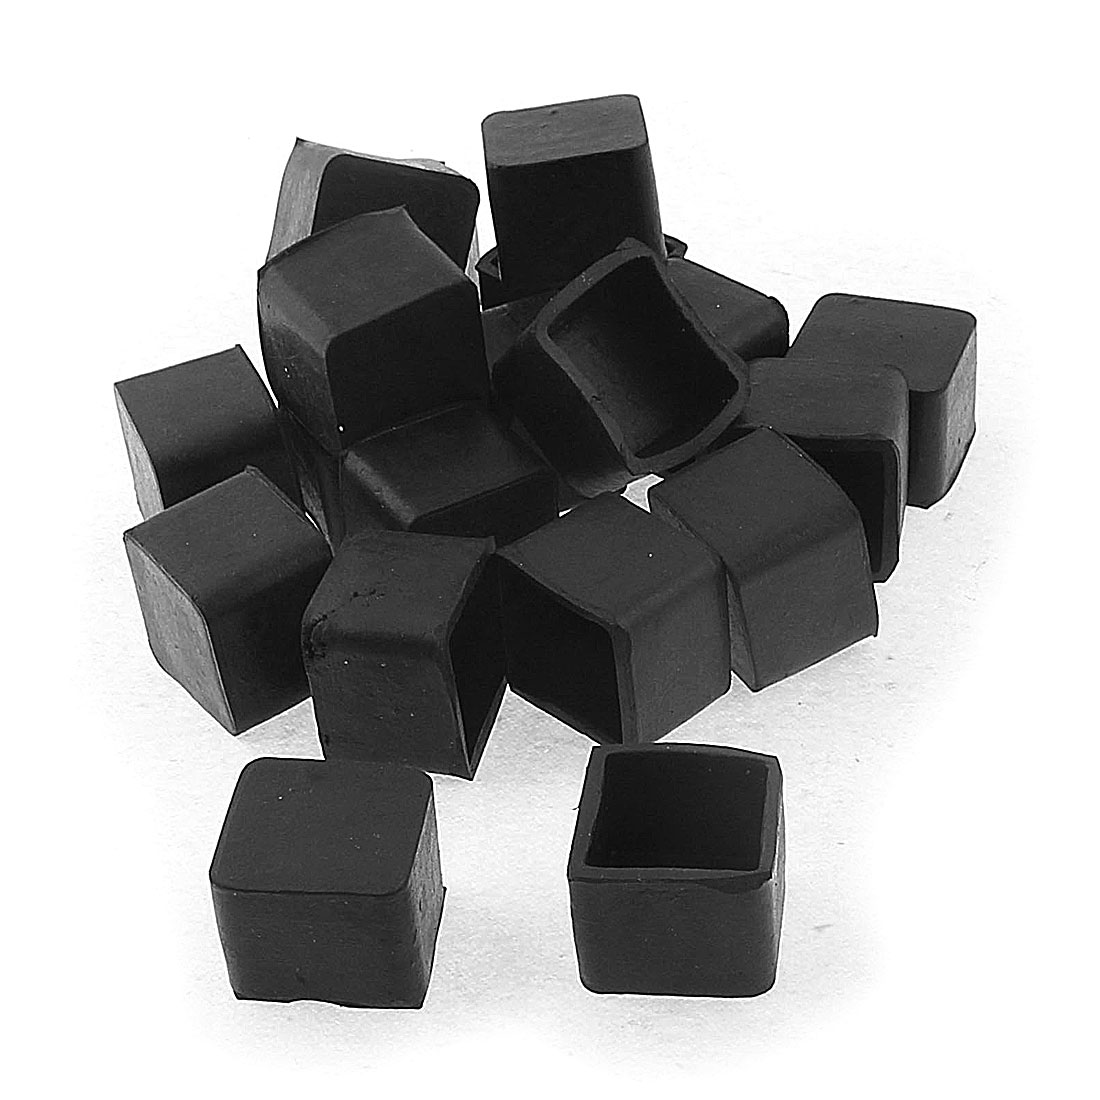 20mm x 20mm Square Shape Furniture Table Desk Foot Leg End Cap Cover Black 20pcs